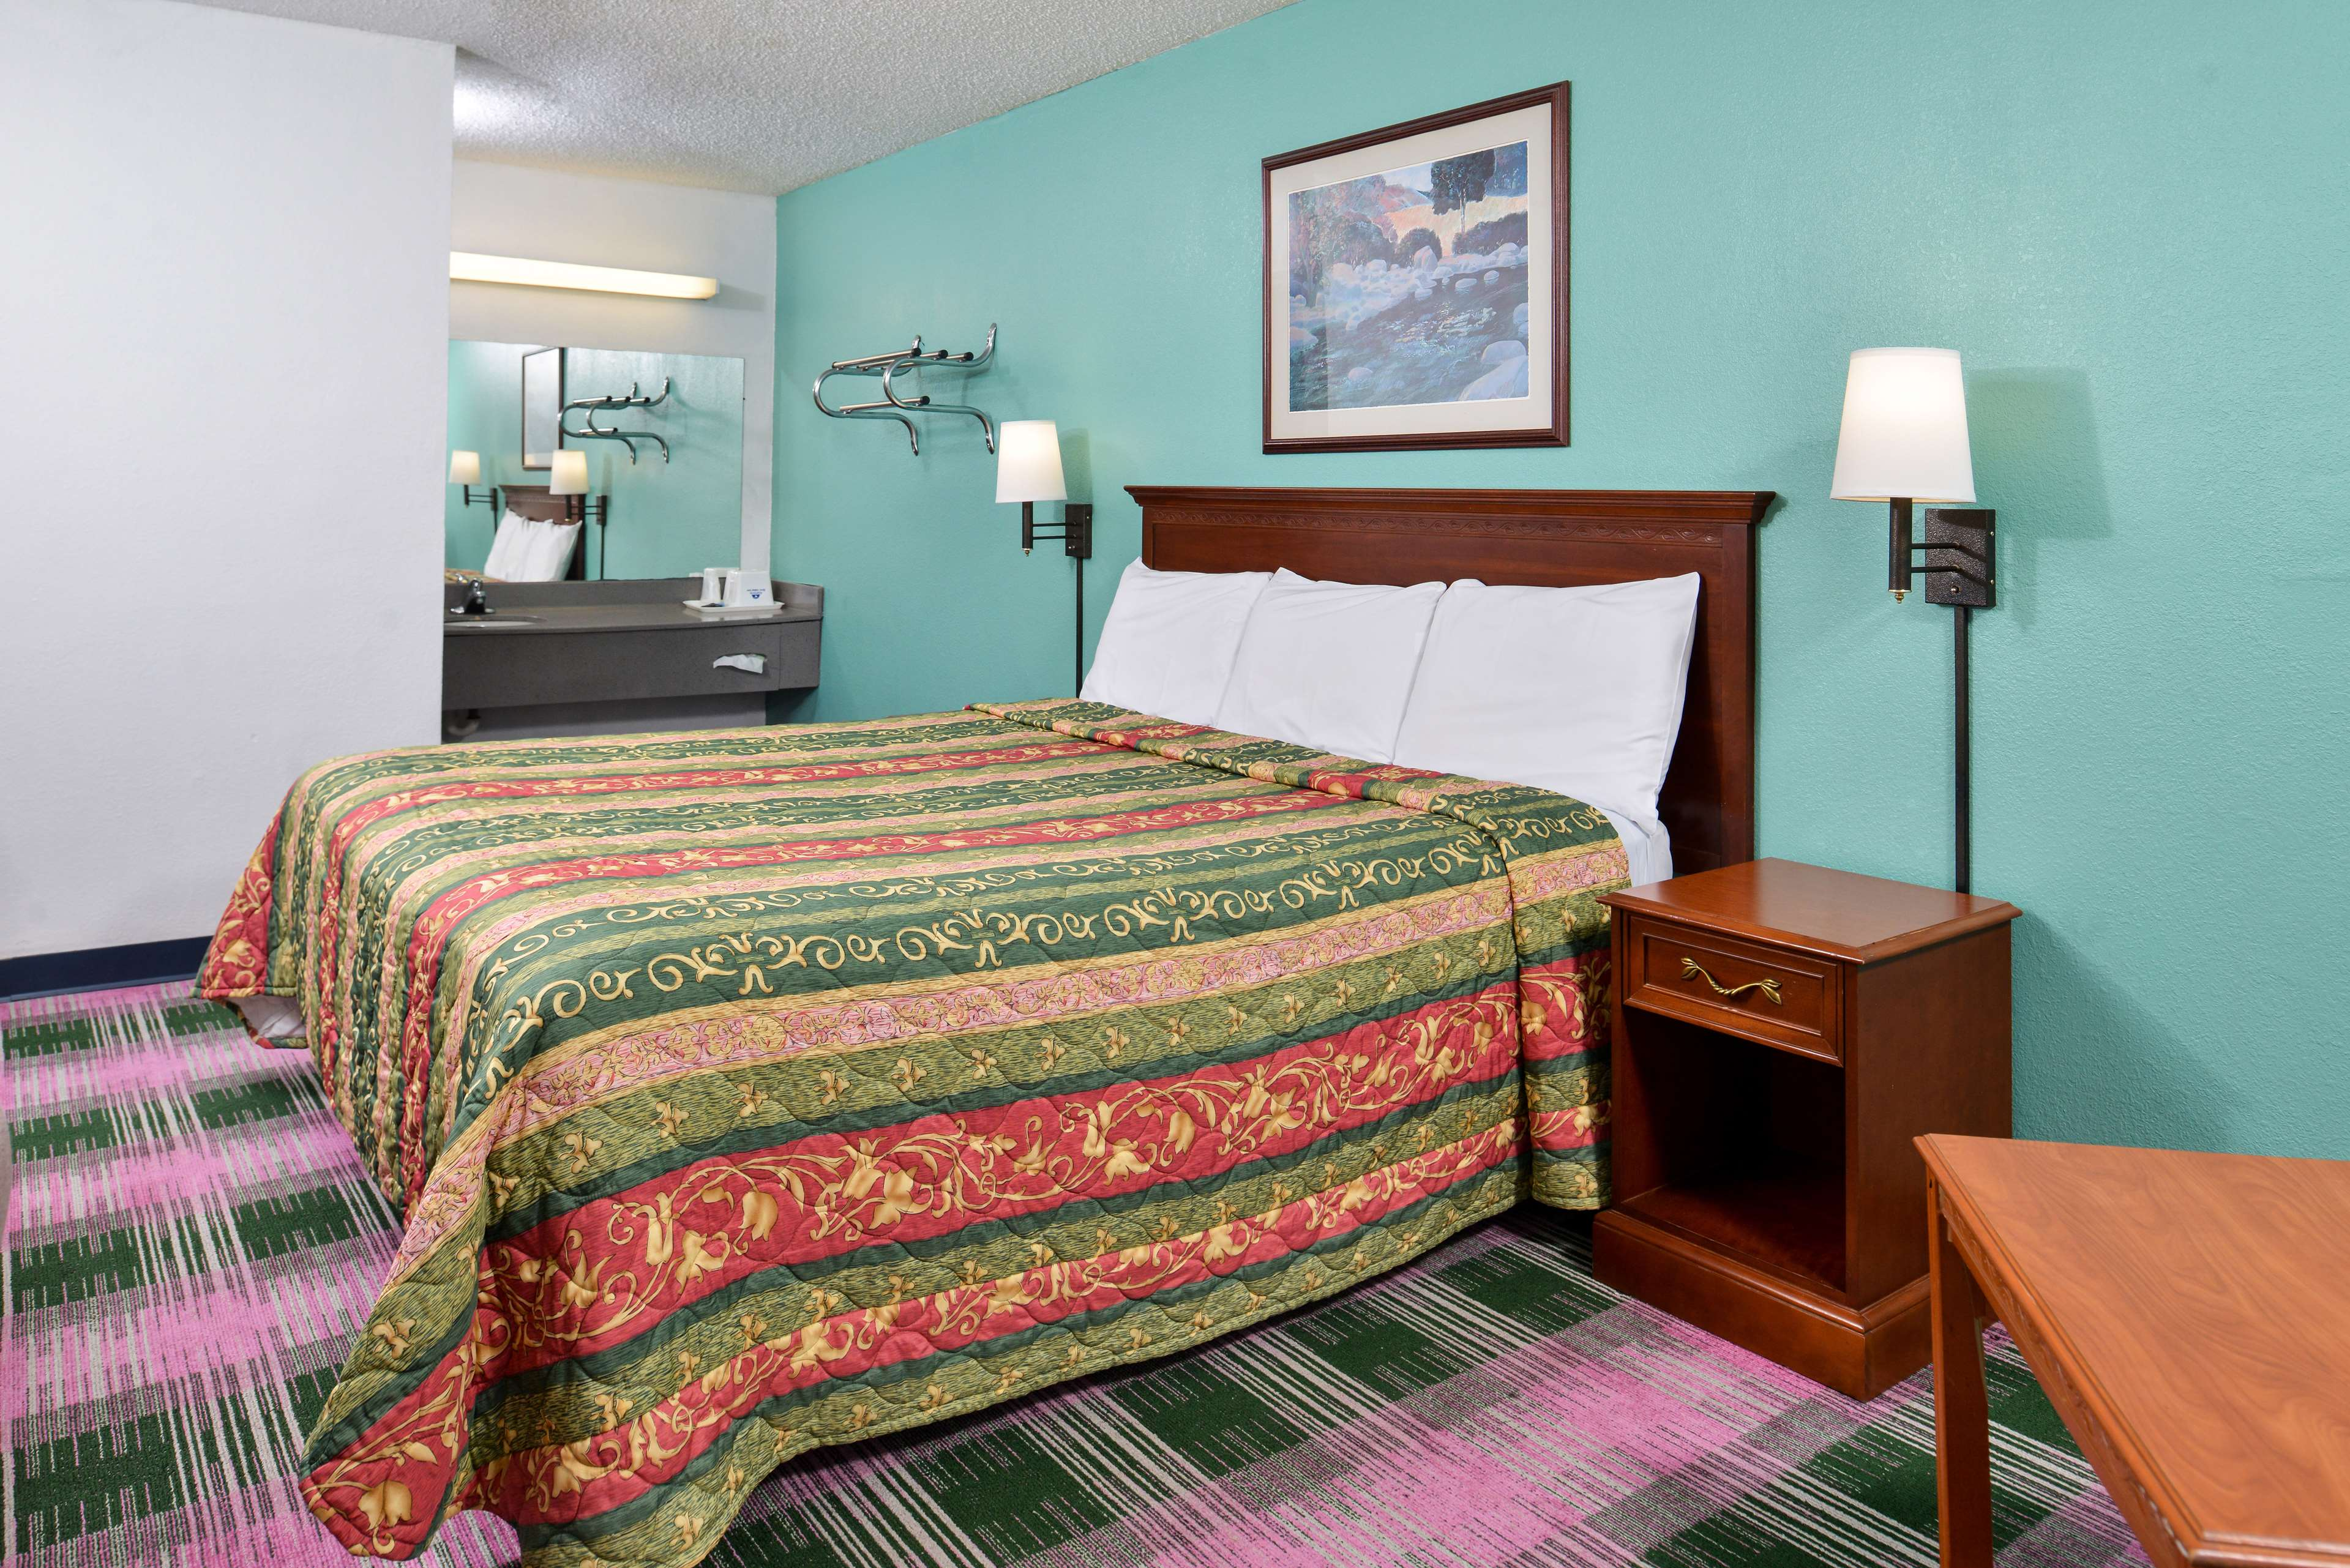 Americas Best Value Inn - Indy South image 8